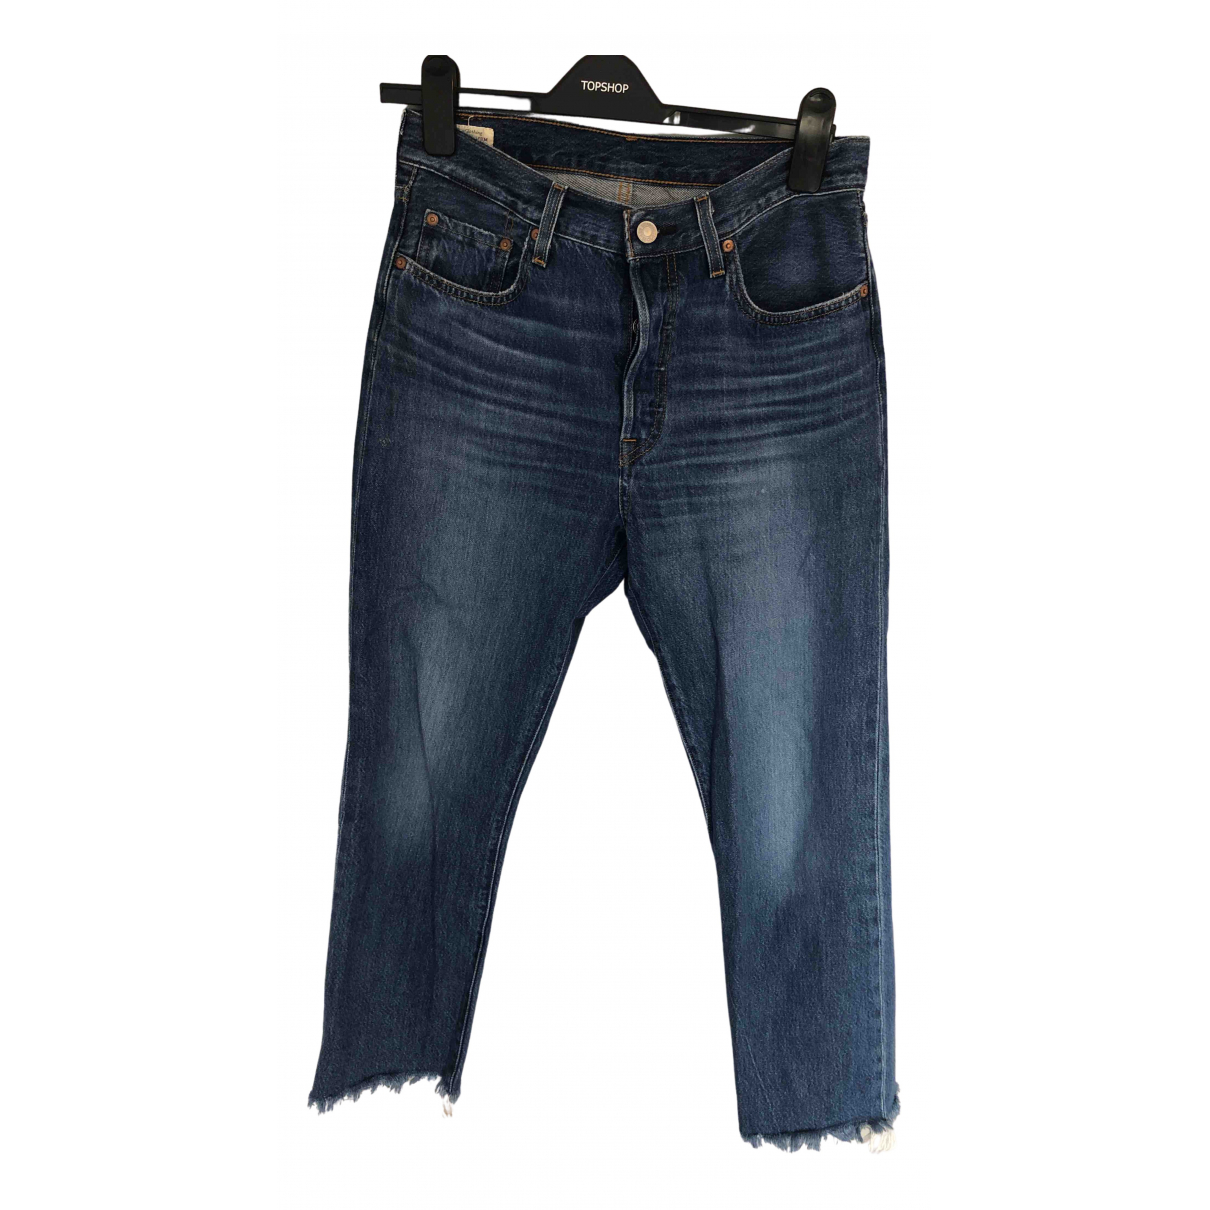 Levi's 501 Blue Cotton Jeans for Women 22 US